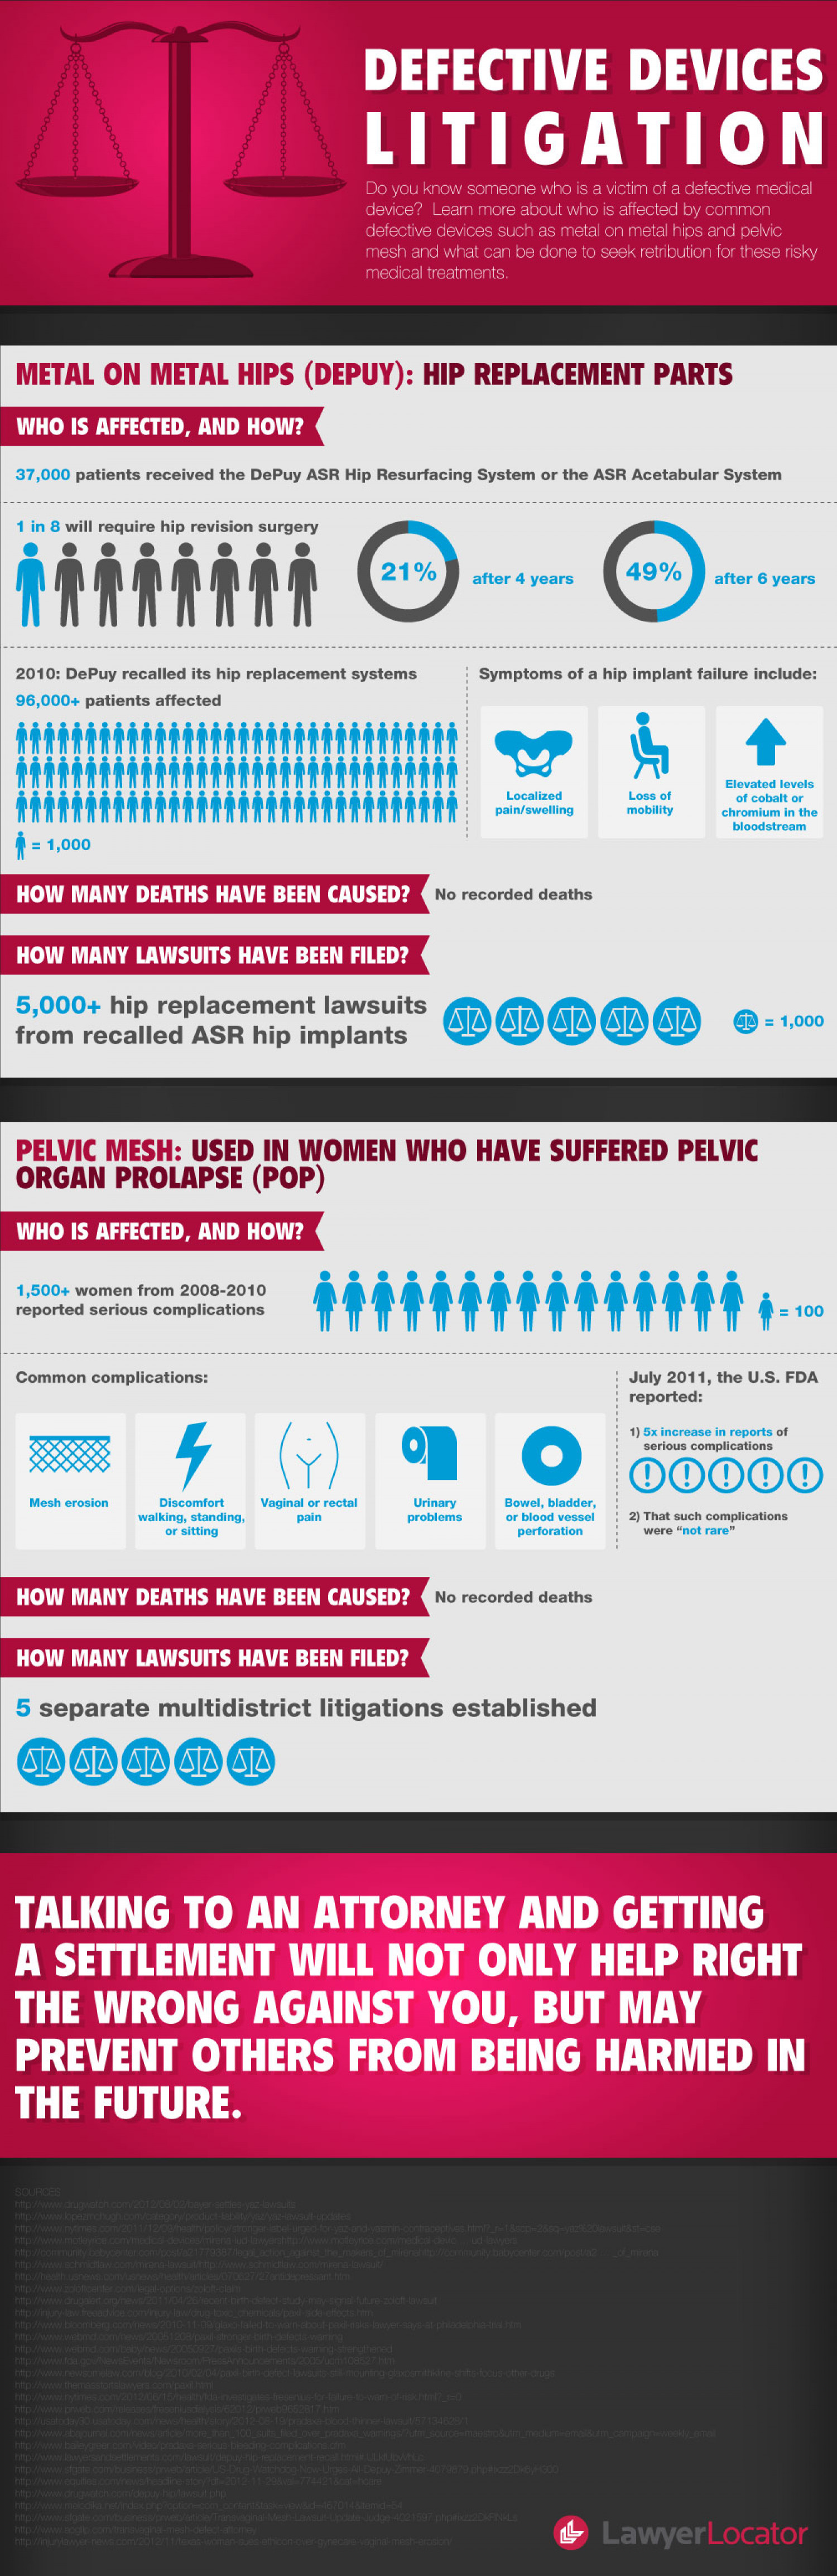 Defective Devices Litigation Infographic Infographic